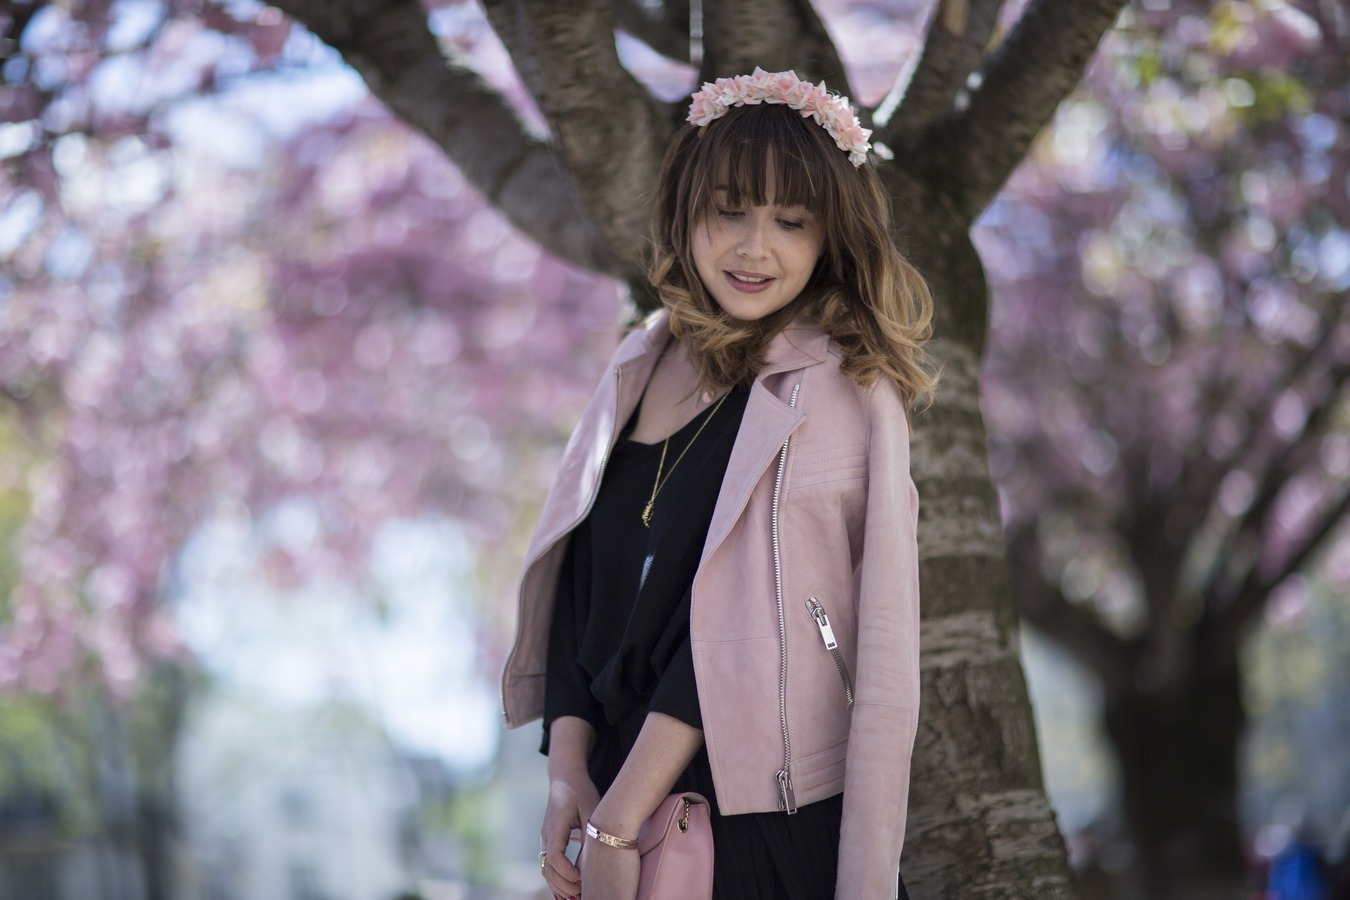 du style madame - blog mode - streetstyle - we are the models - #fillesenfleurs